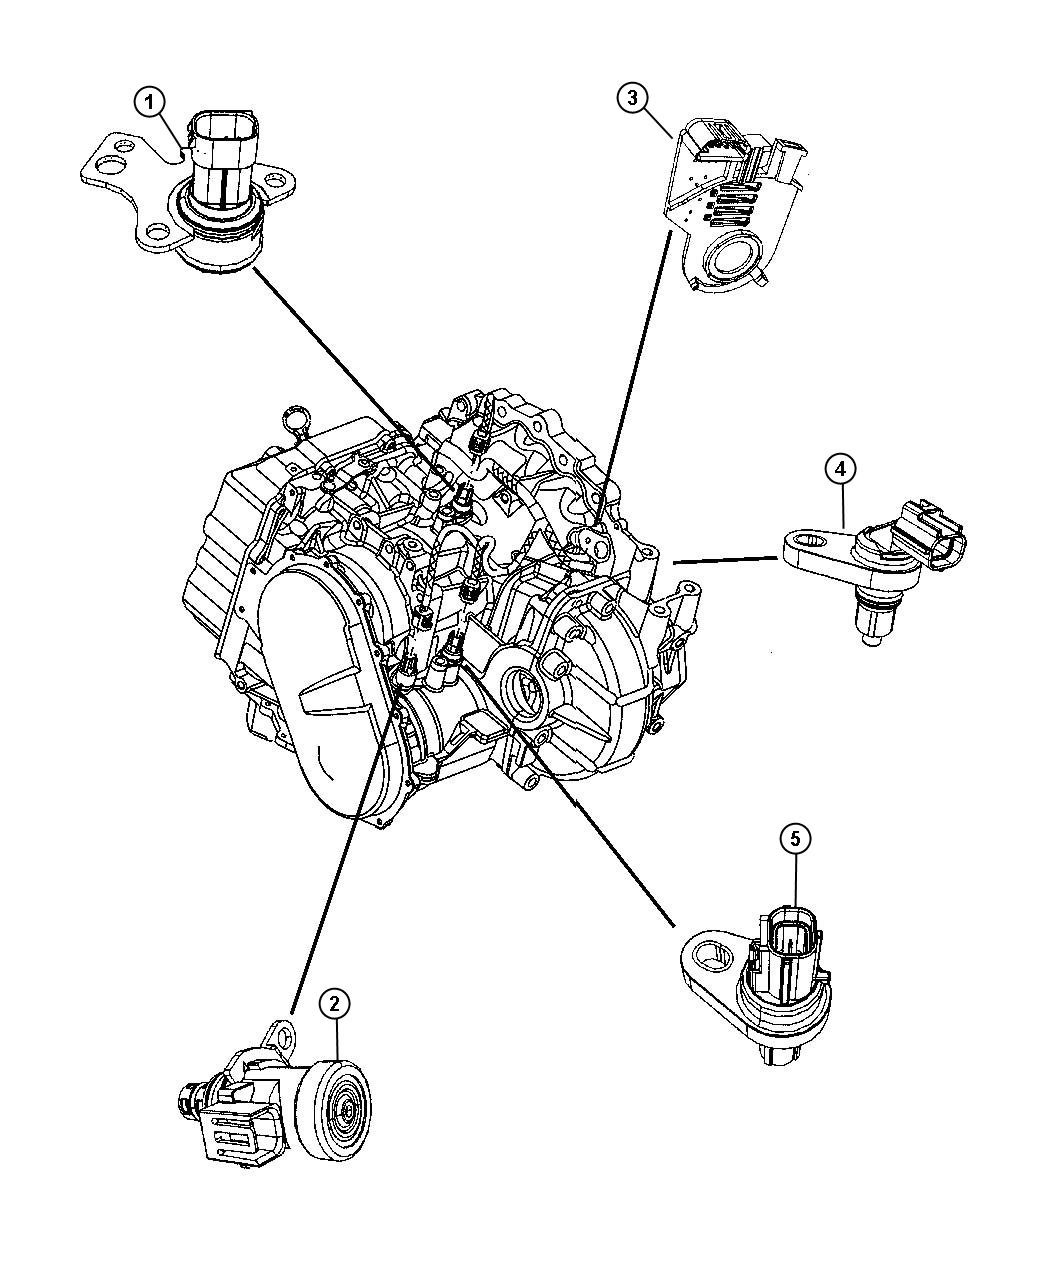 2011 dodge grand caravan parts diagram